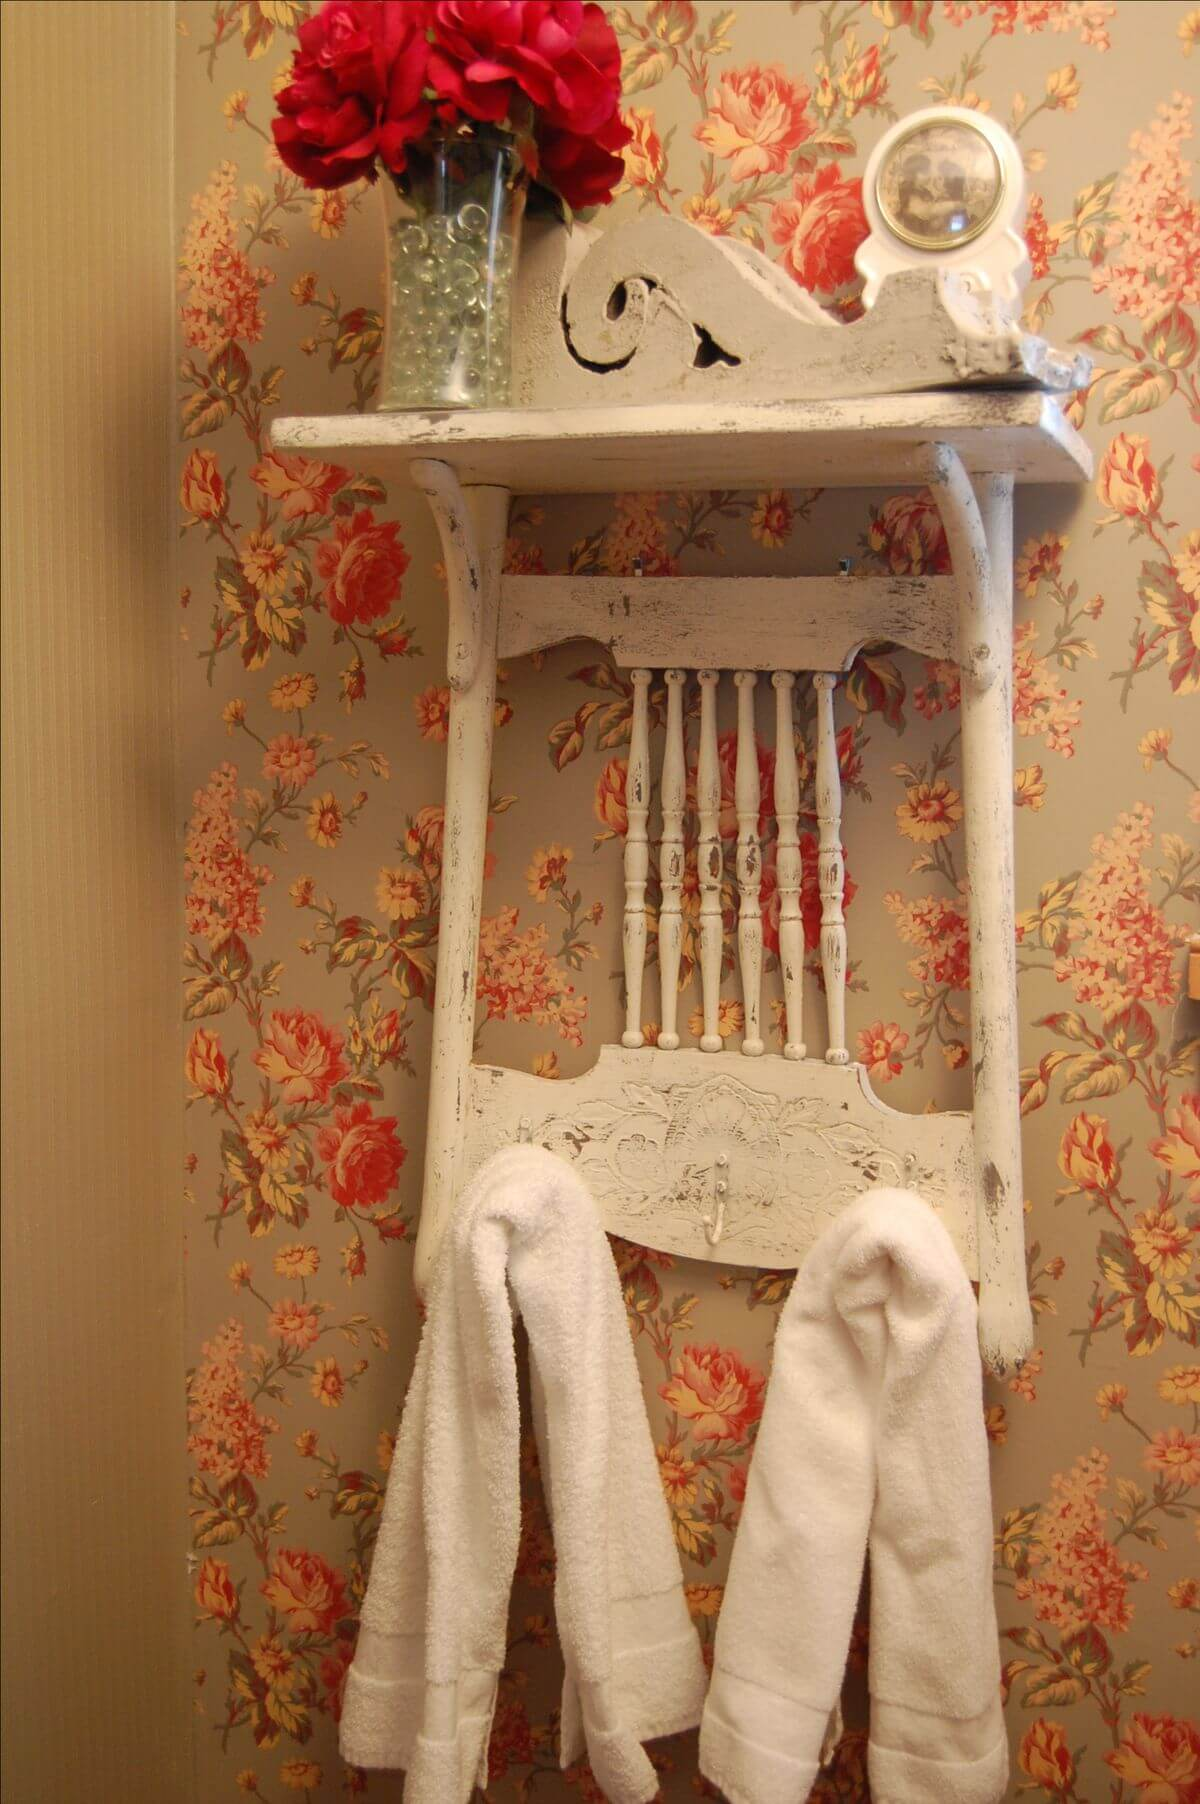 Charming Chair-Mounted Towel Hang